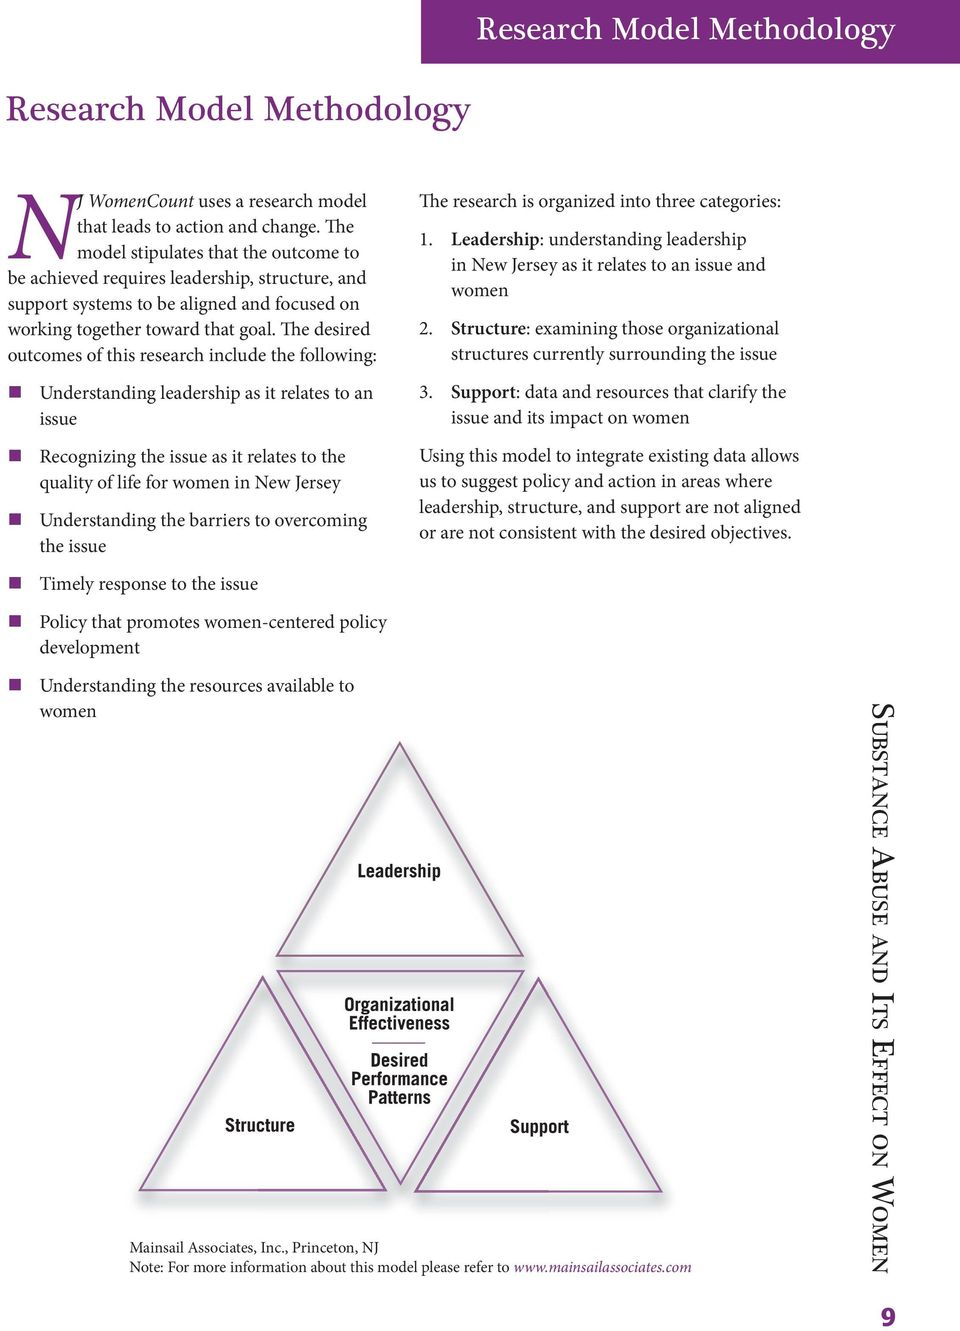 The desired outcomes of this research include the following: Understanding leadership as it relates to an issue Recognizing the issue as it relates to the quality of life for women in New Jersey